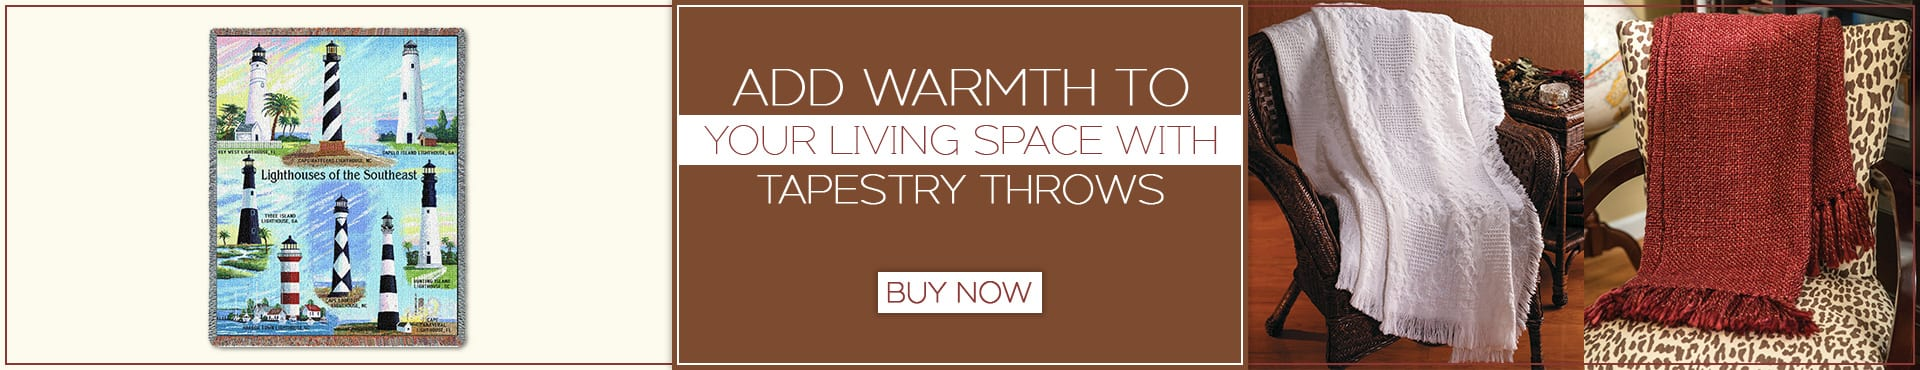 Add Warmth to Your Living Space with tapestry throws